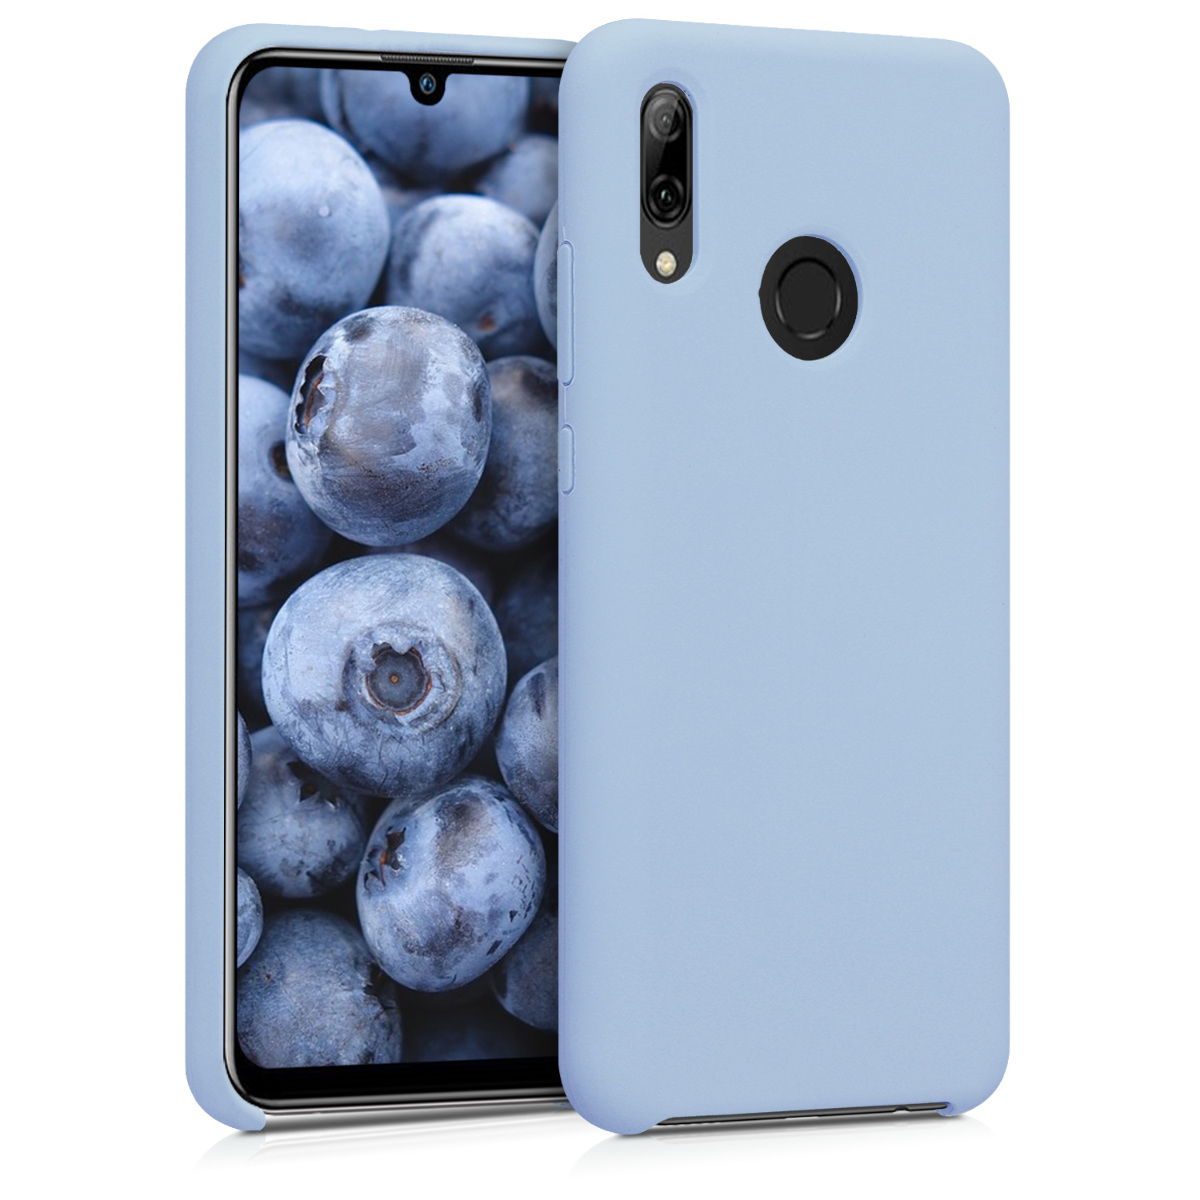 KW Θήκη Σιλικόνης Huawei P Smart 2019 - Soft Flexible Rubber - Light Blue Matte (47824.58)